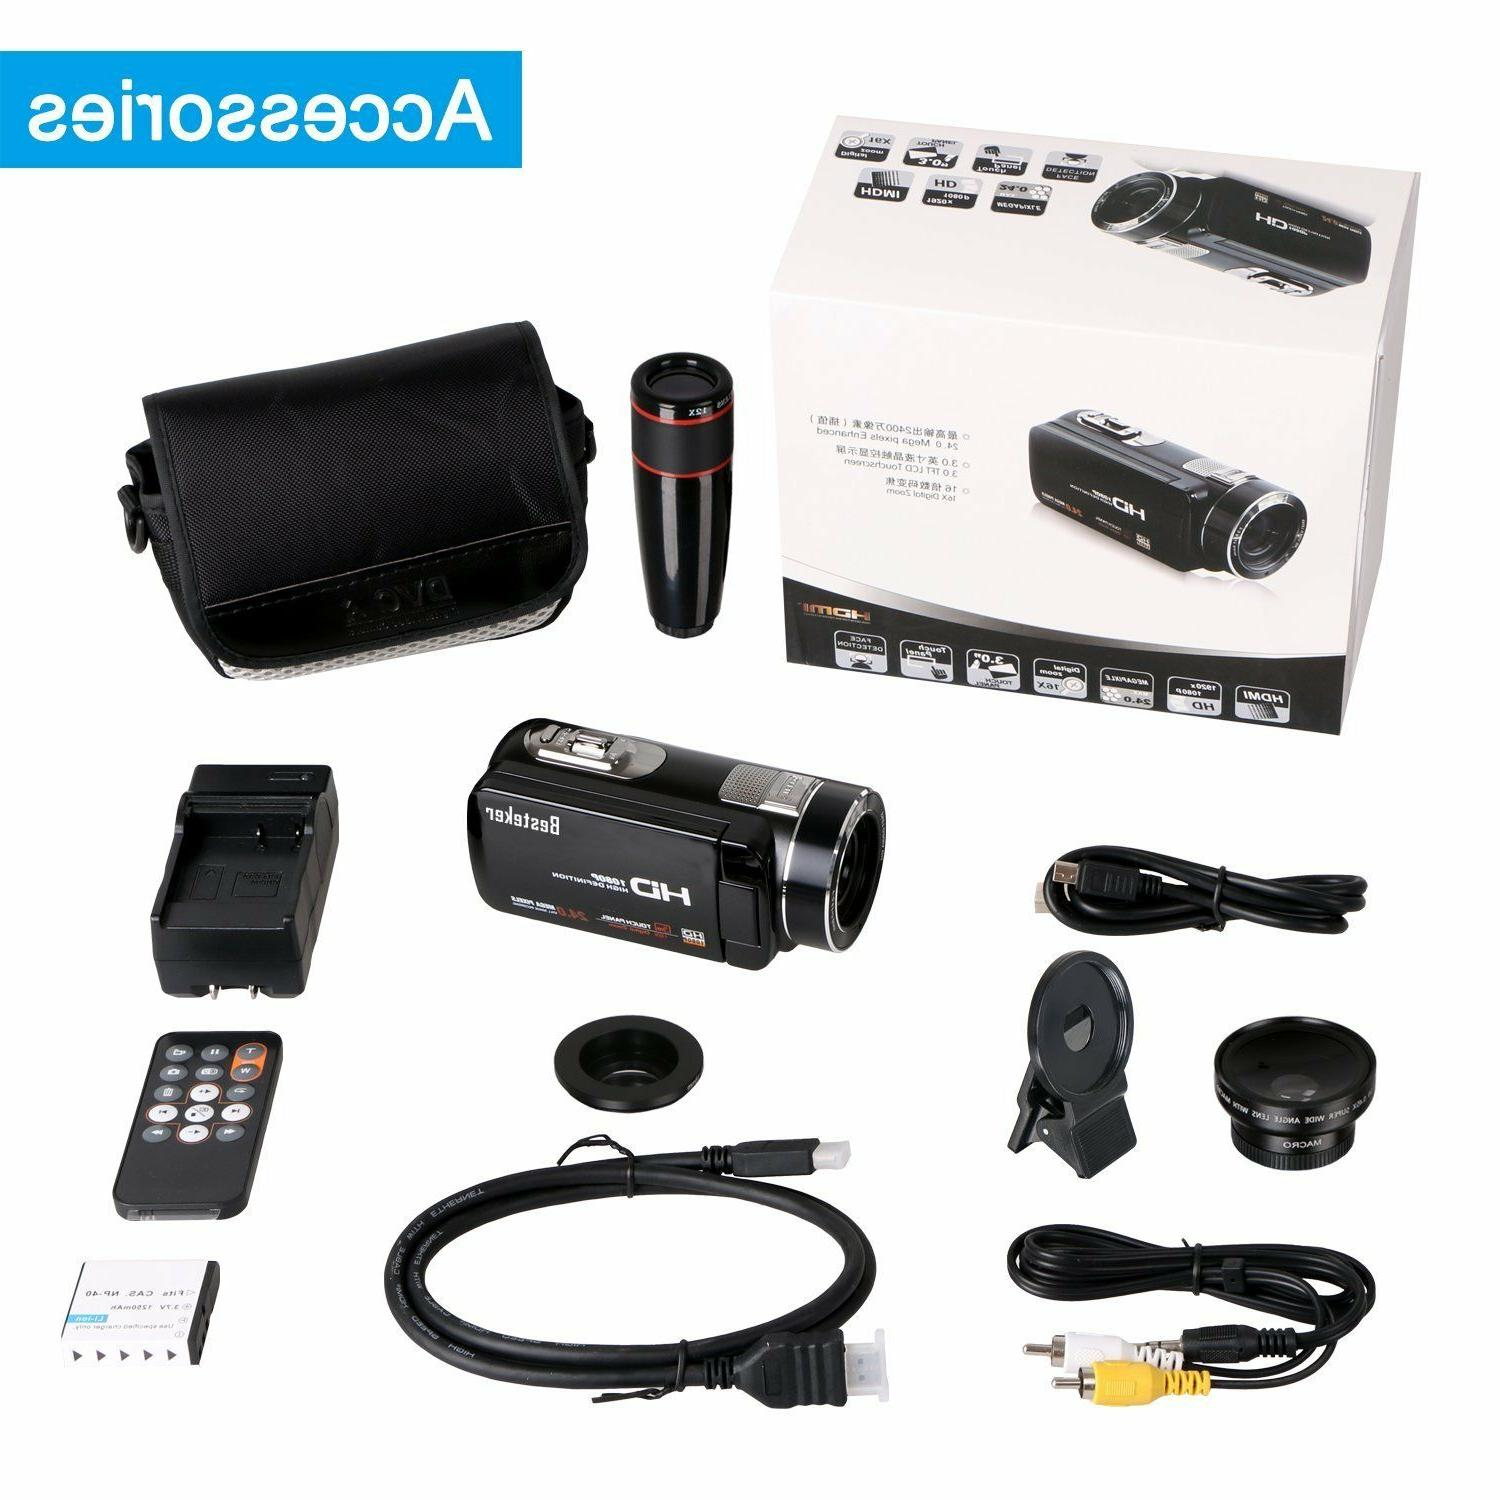 Video Camcorder, Besteker Portable HD 1080p 24.0 Megapixels